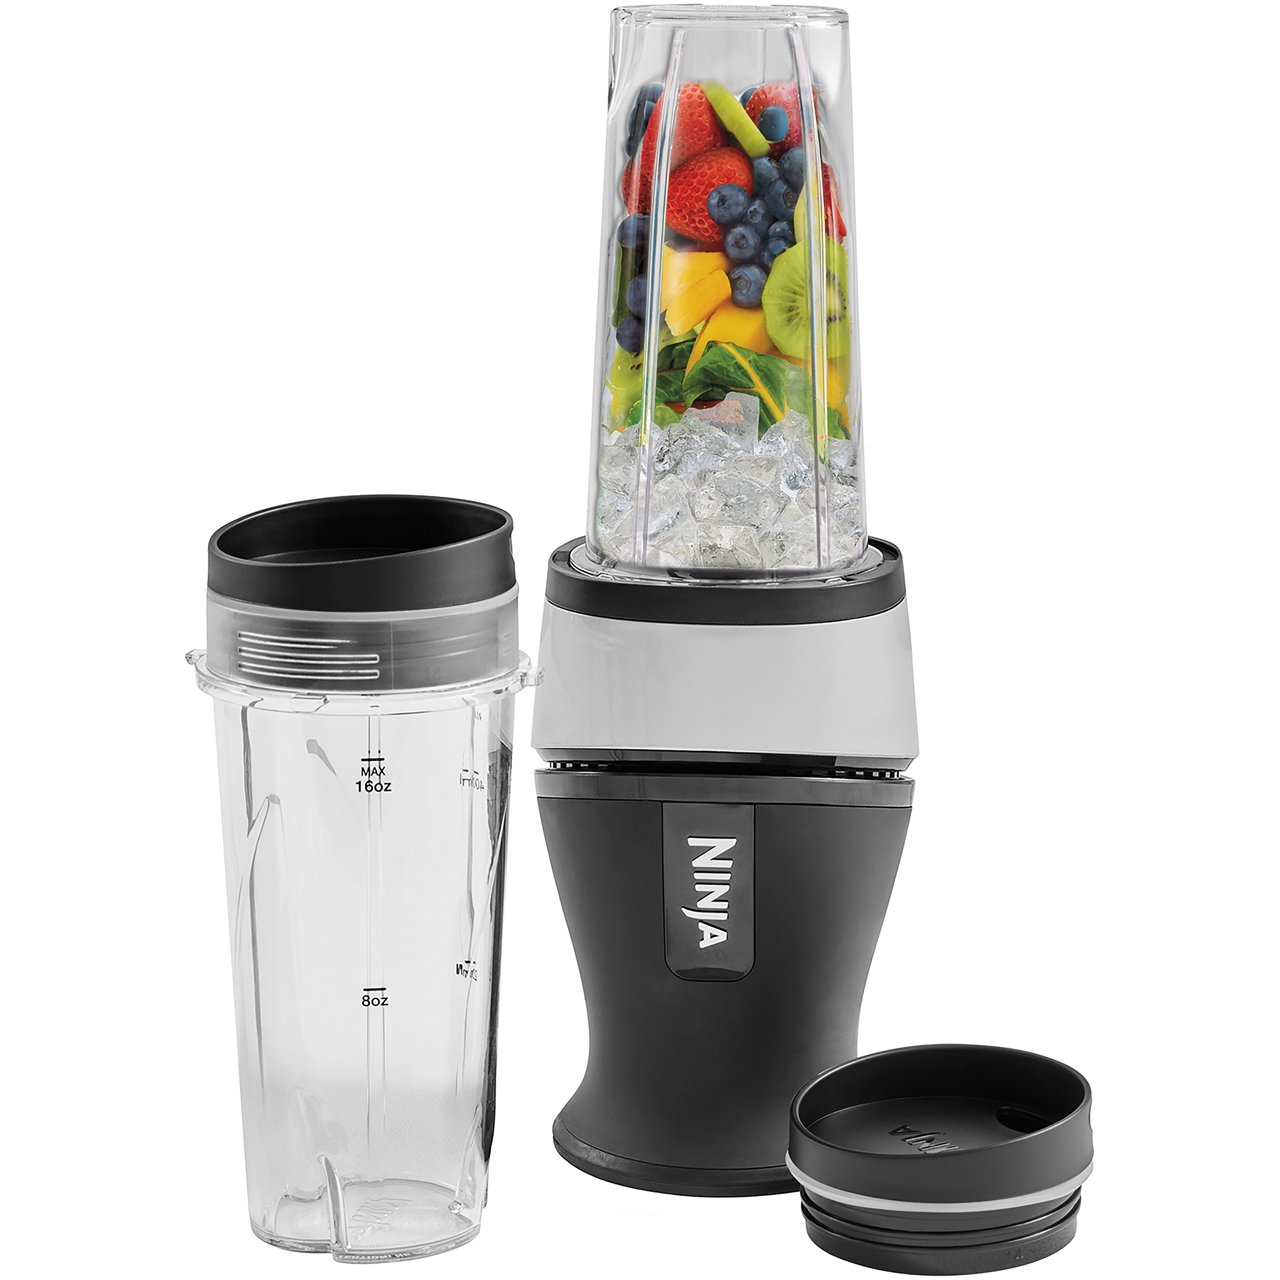 Ninja QB3001UK Smoothie Maker with 2 Drink Containers - Black